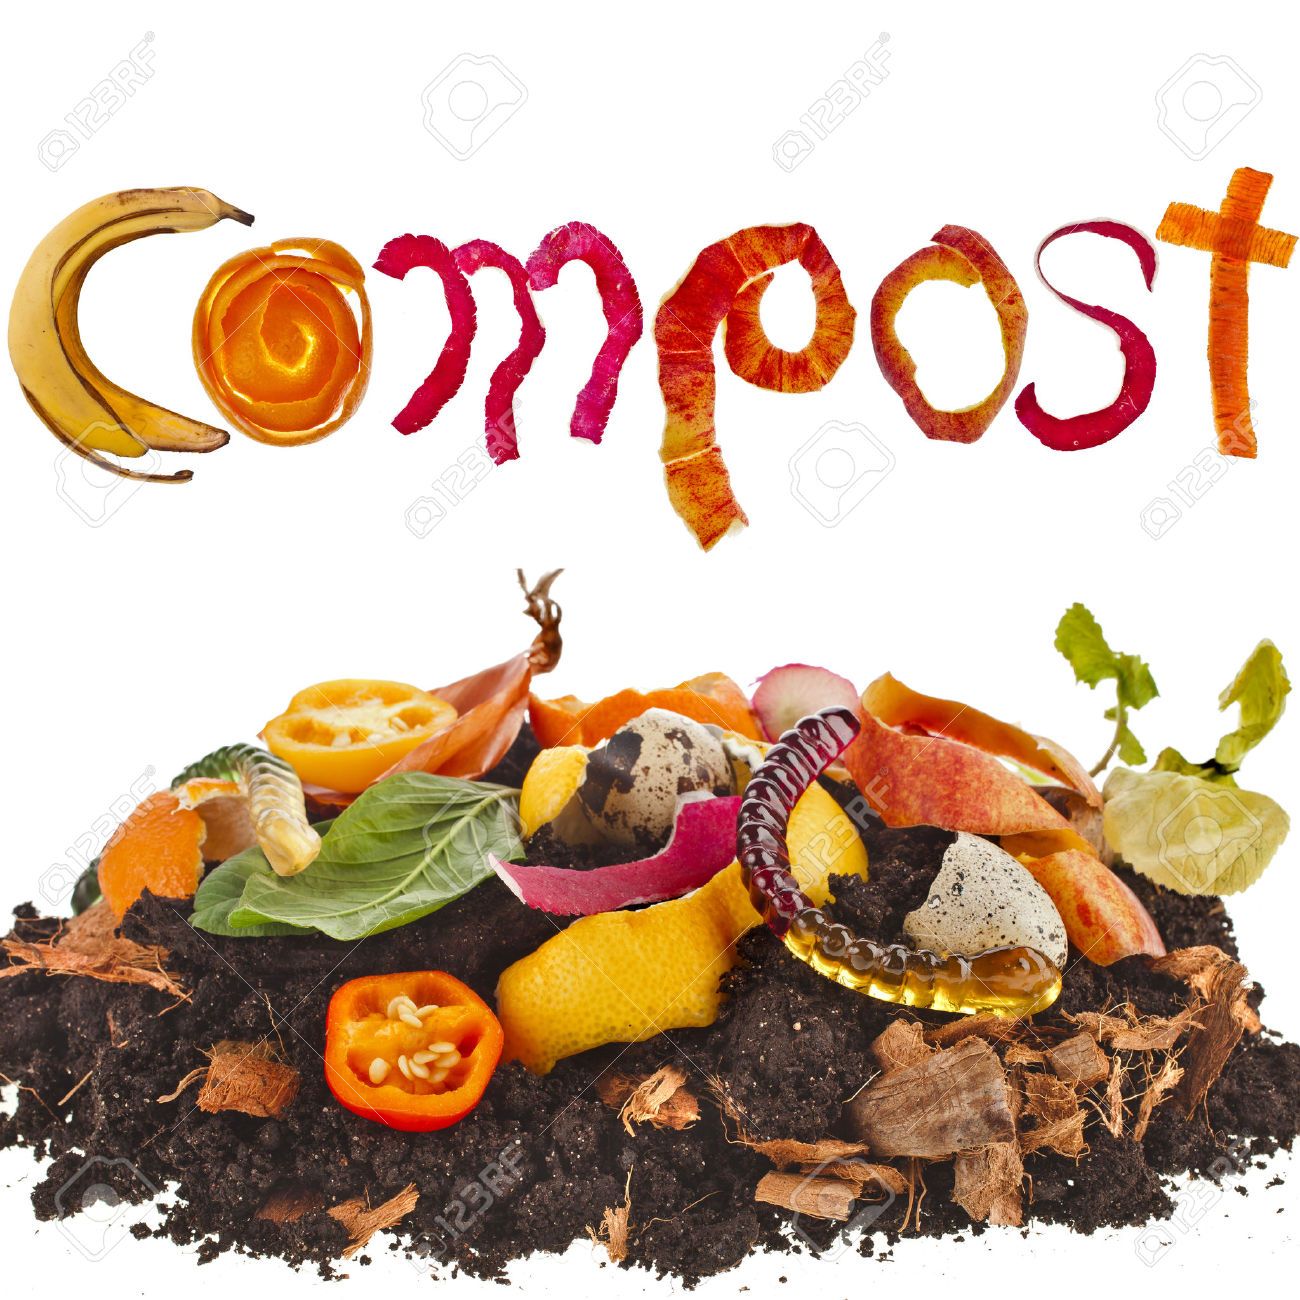 Food Scraps Images & Stock Pictures. Royalty Free Food Scraps.